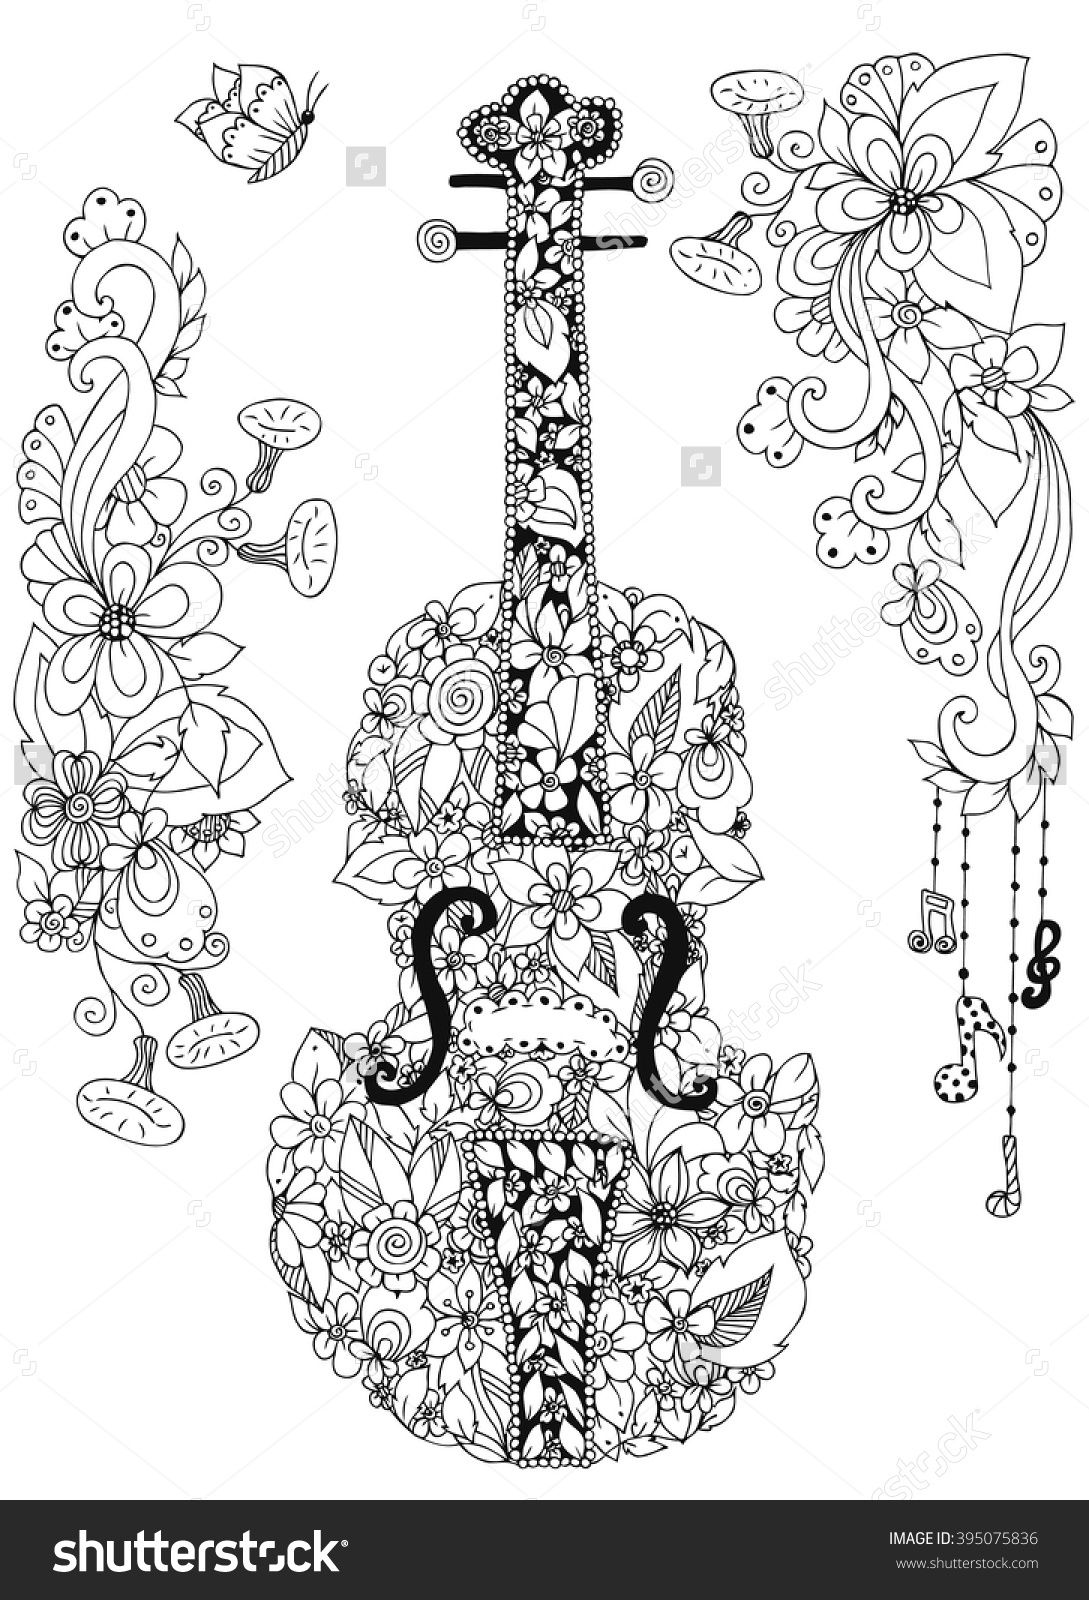 Zentangle Violin Cello Of Flowers Doodle Zenart Mandala Coloring